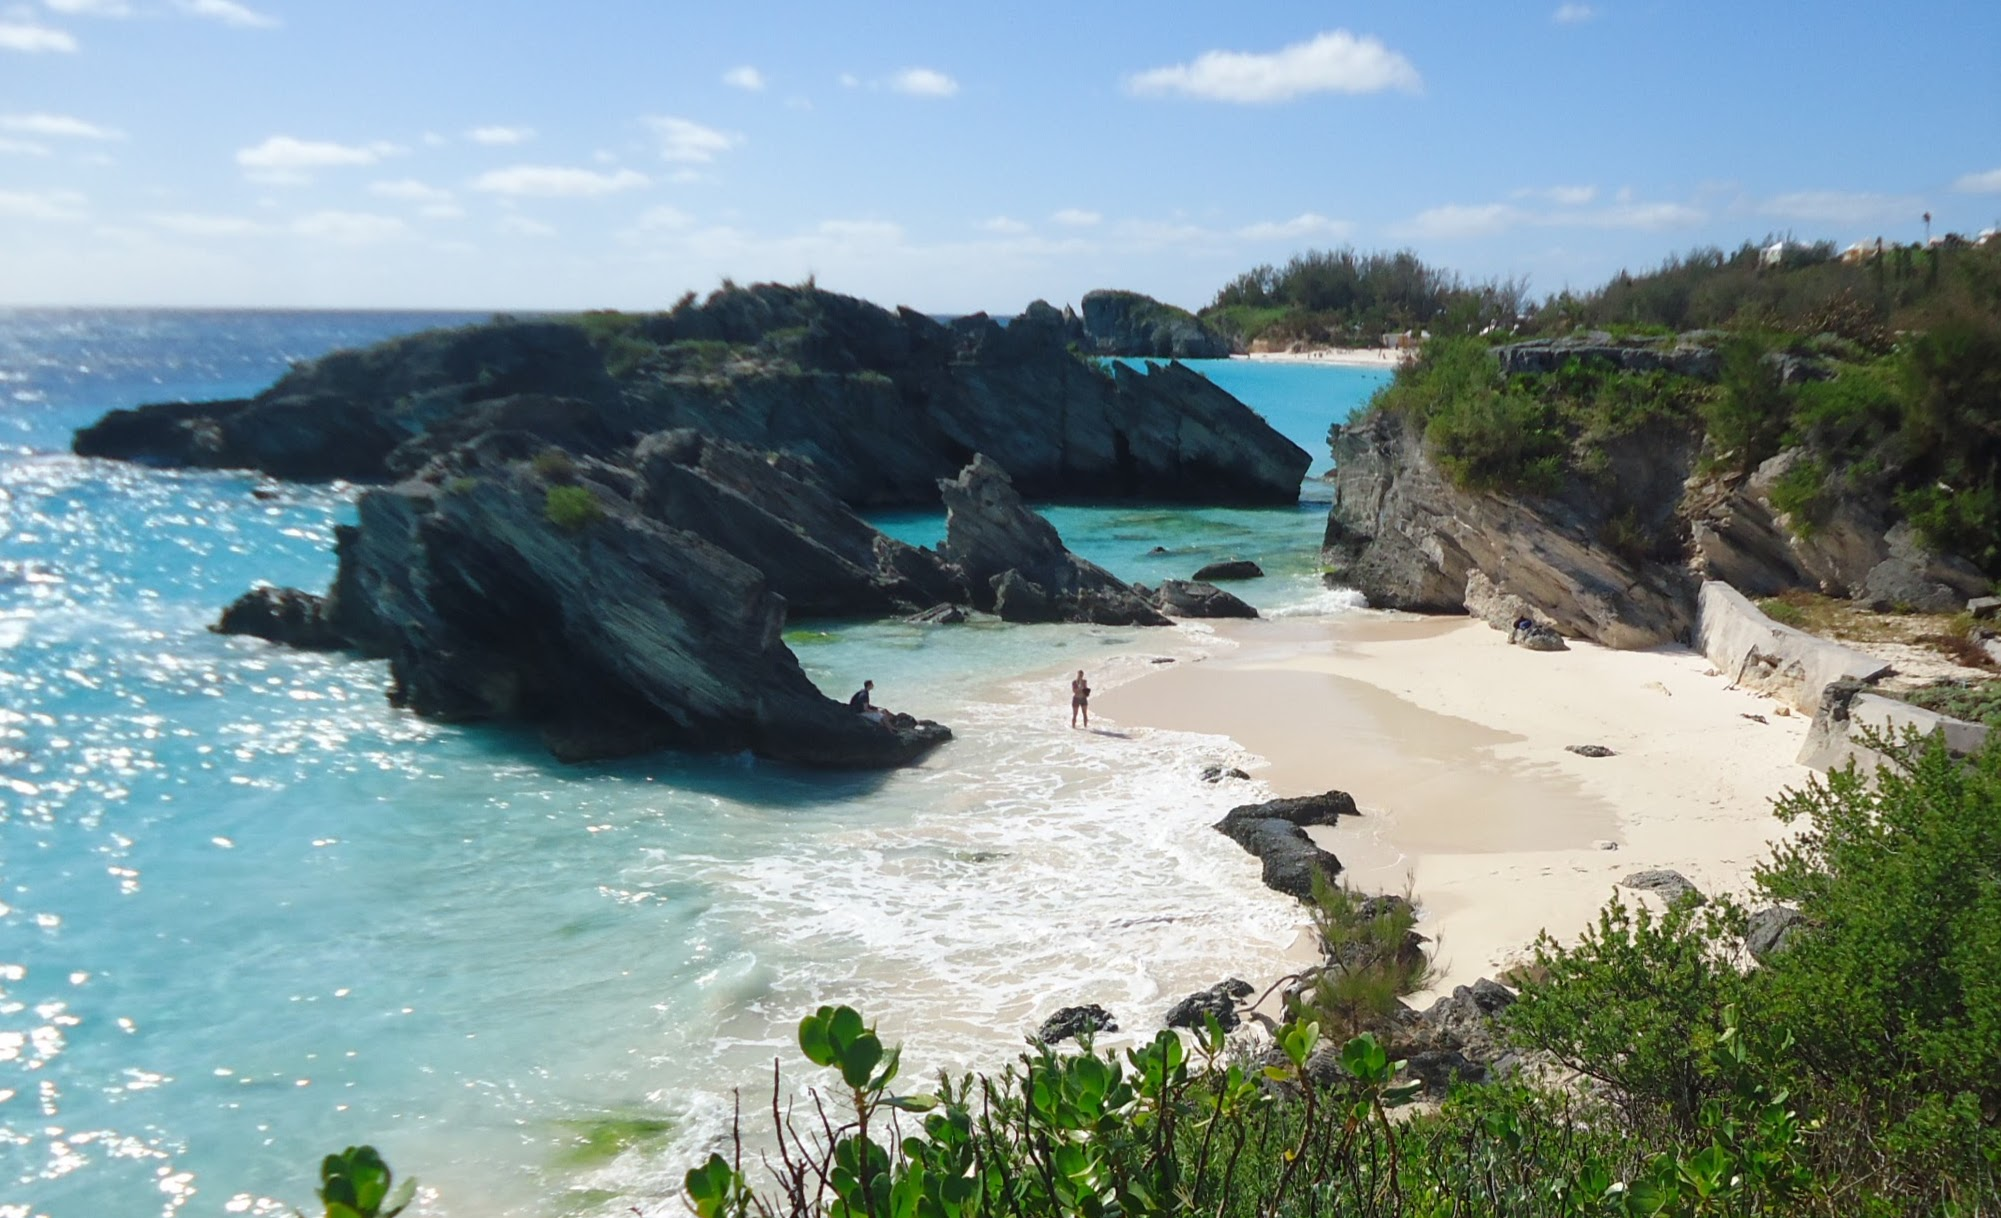 File:Bermuda (UK) image number 235 view from bluff looking at Horseshoe Bay  beach.jpg - Wikimedia Commons